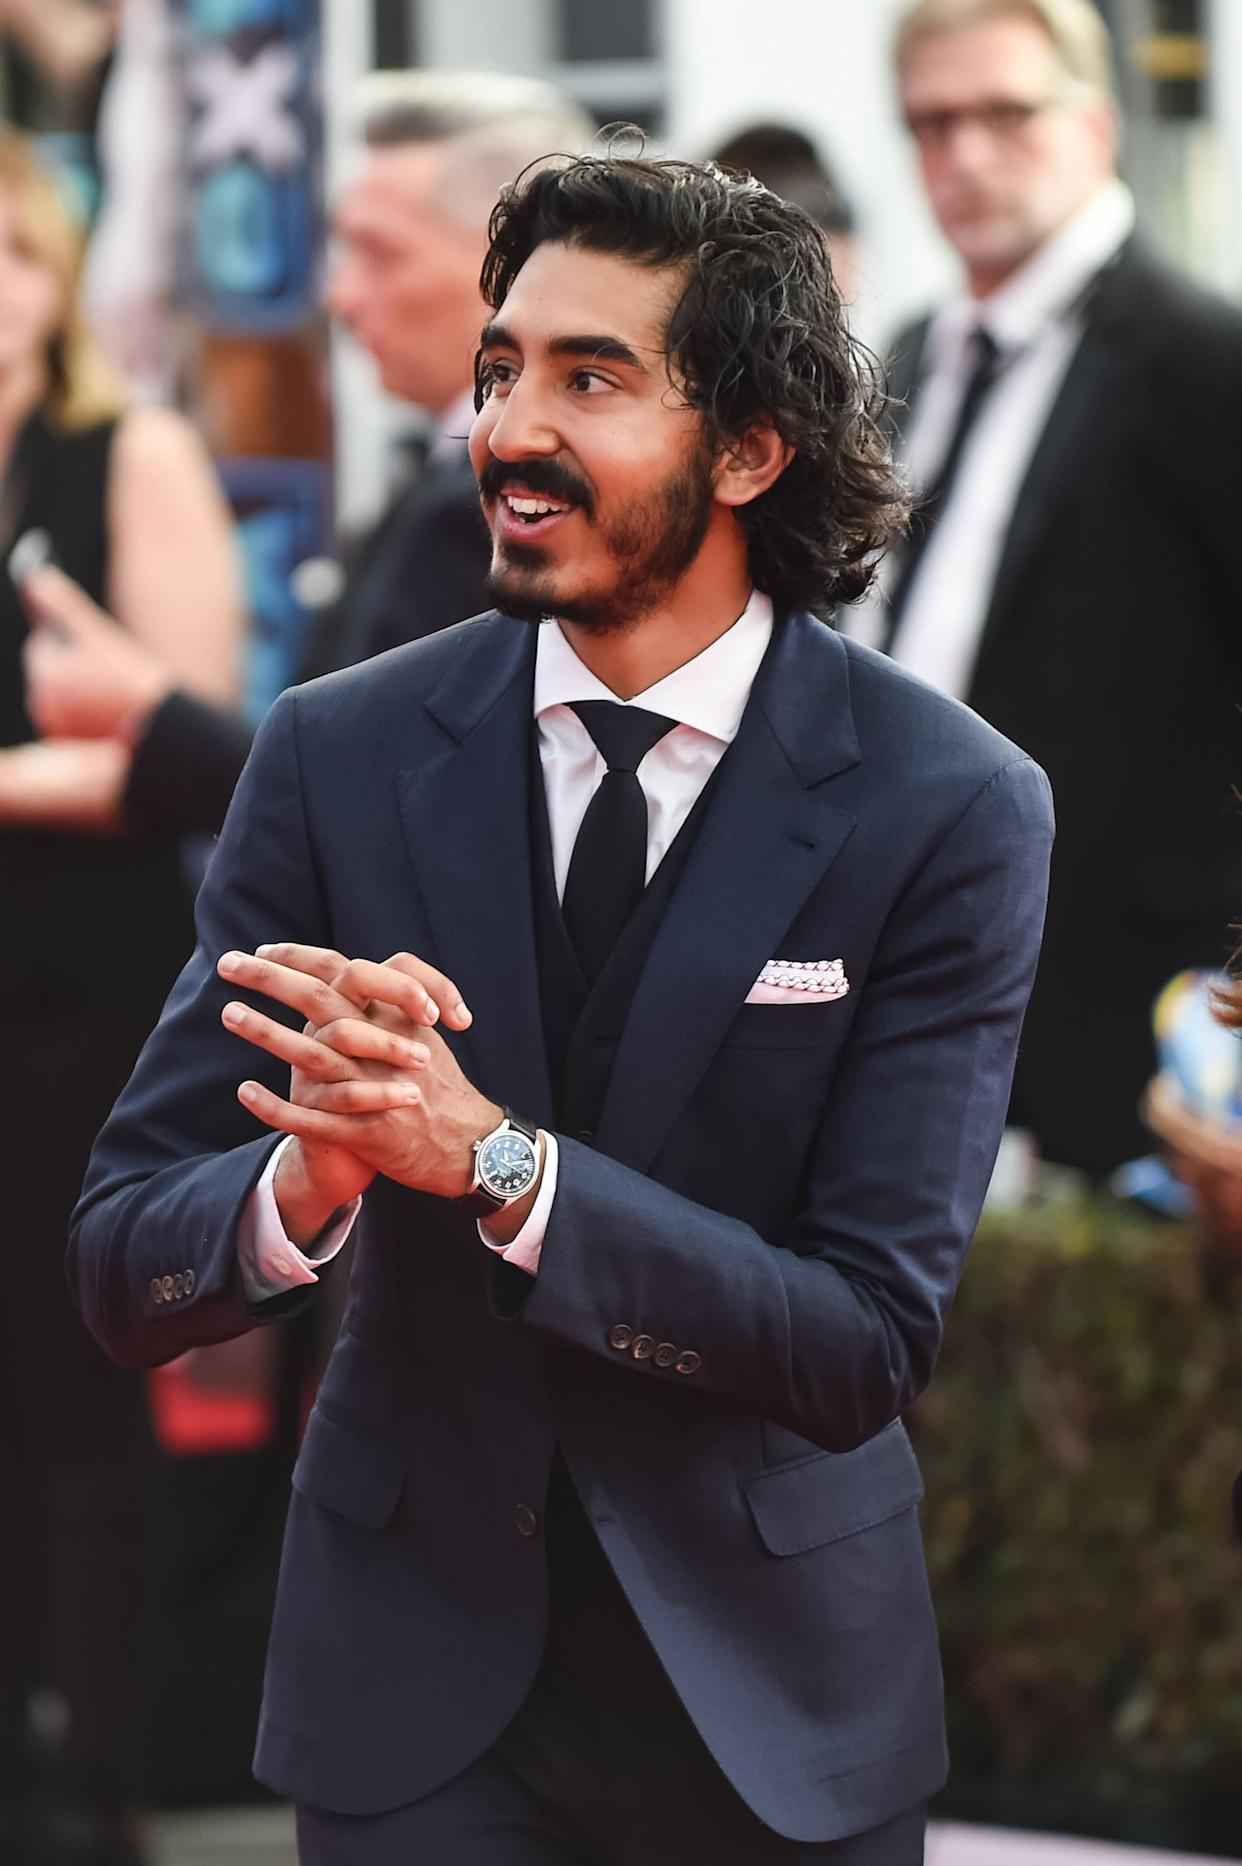 Dev Patel stopped on the red carpet to speak out during the 23rd annual Screen Actors Guild Awards.<br><br>&quot;I've just flown in from India and&amp;nbsp;to fly into what was a nightmare, to realize that this is actually happening right now in the world, in a country where I live, it's heartbreaking. The first thought that came in my head was just thousands of children and mothers and young fathers that have turned up to these shores with hope, and they're being swatted away. It's just so divisive and negative and wrong. It's scary, it's really scary.&quot;